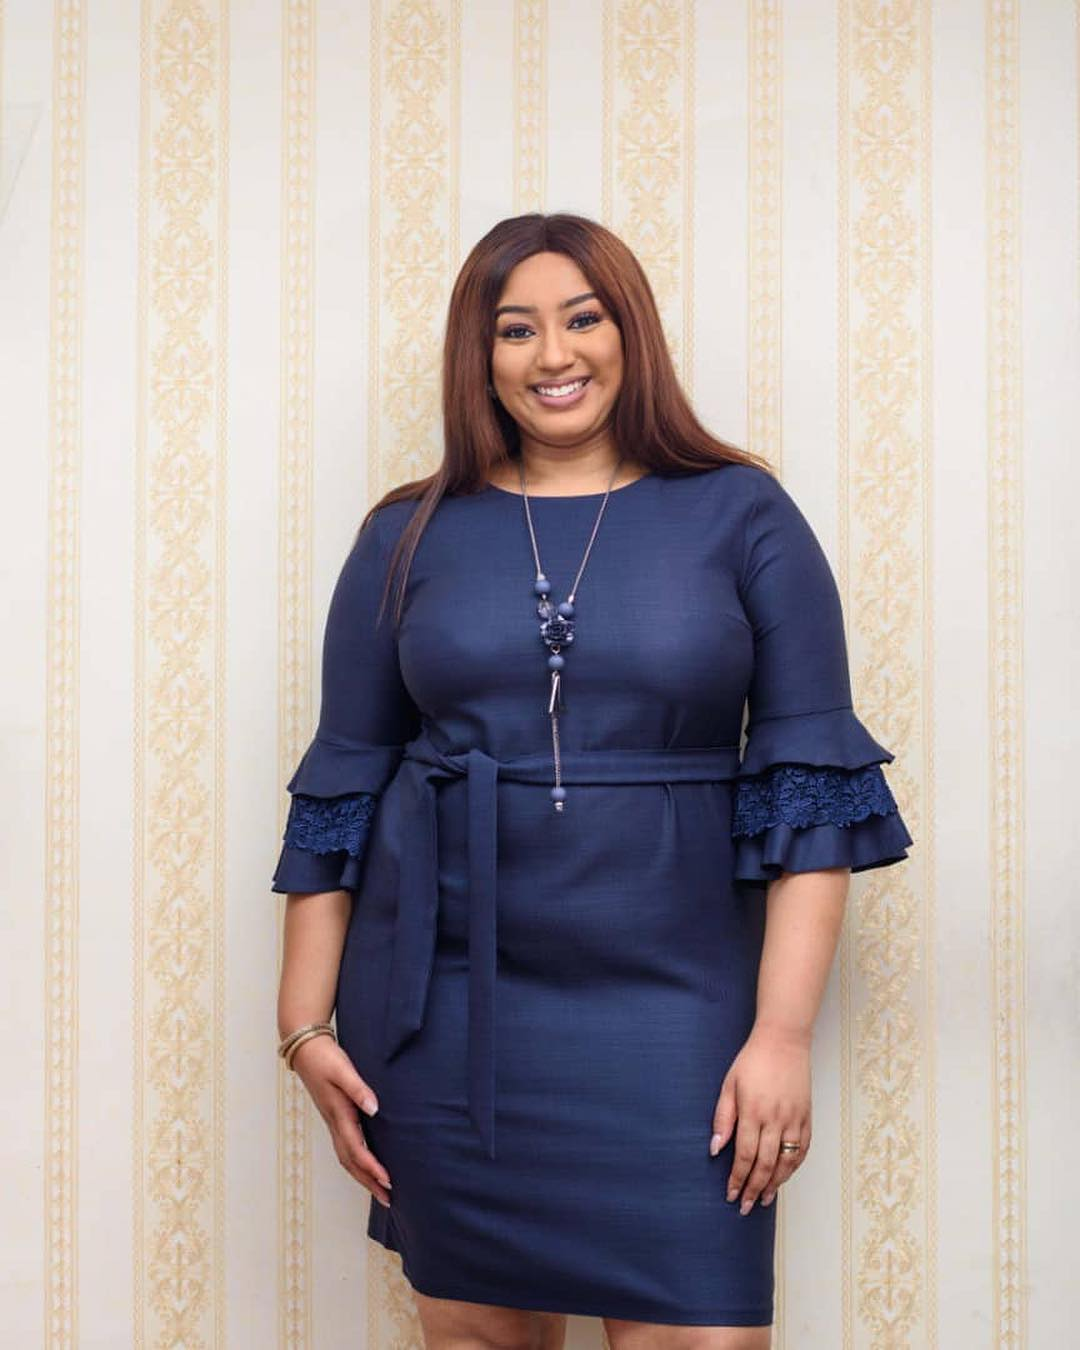 """9f7e0af9eae98469135cf34d170d3777 - """"I am happy, hurting & healing at the same time,"""" - Mofe Duncan's ex-wife says, months after marriage crashed"""